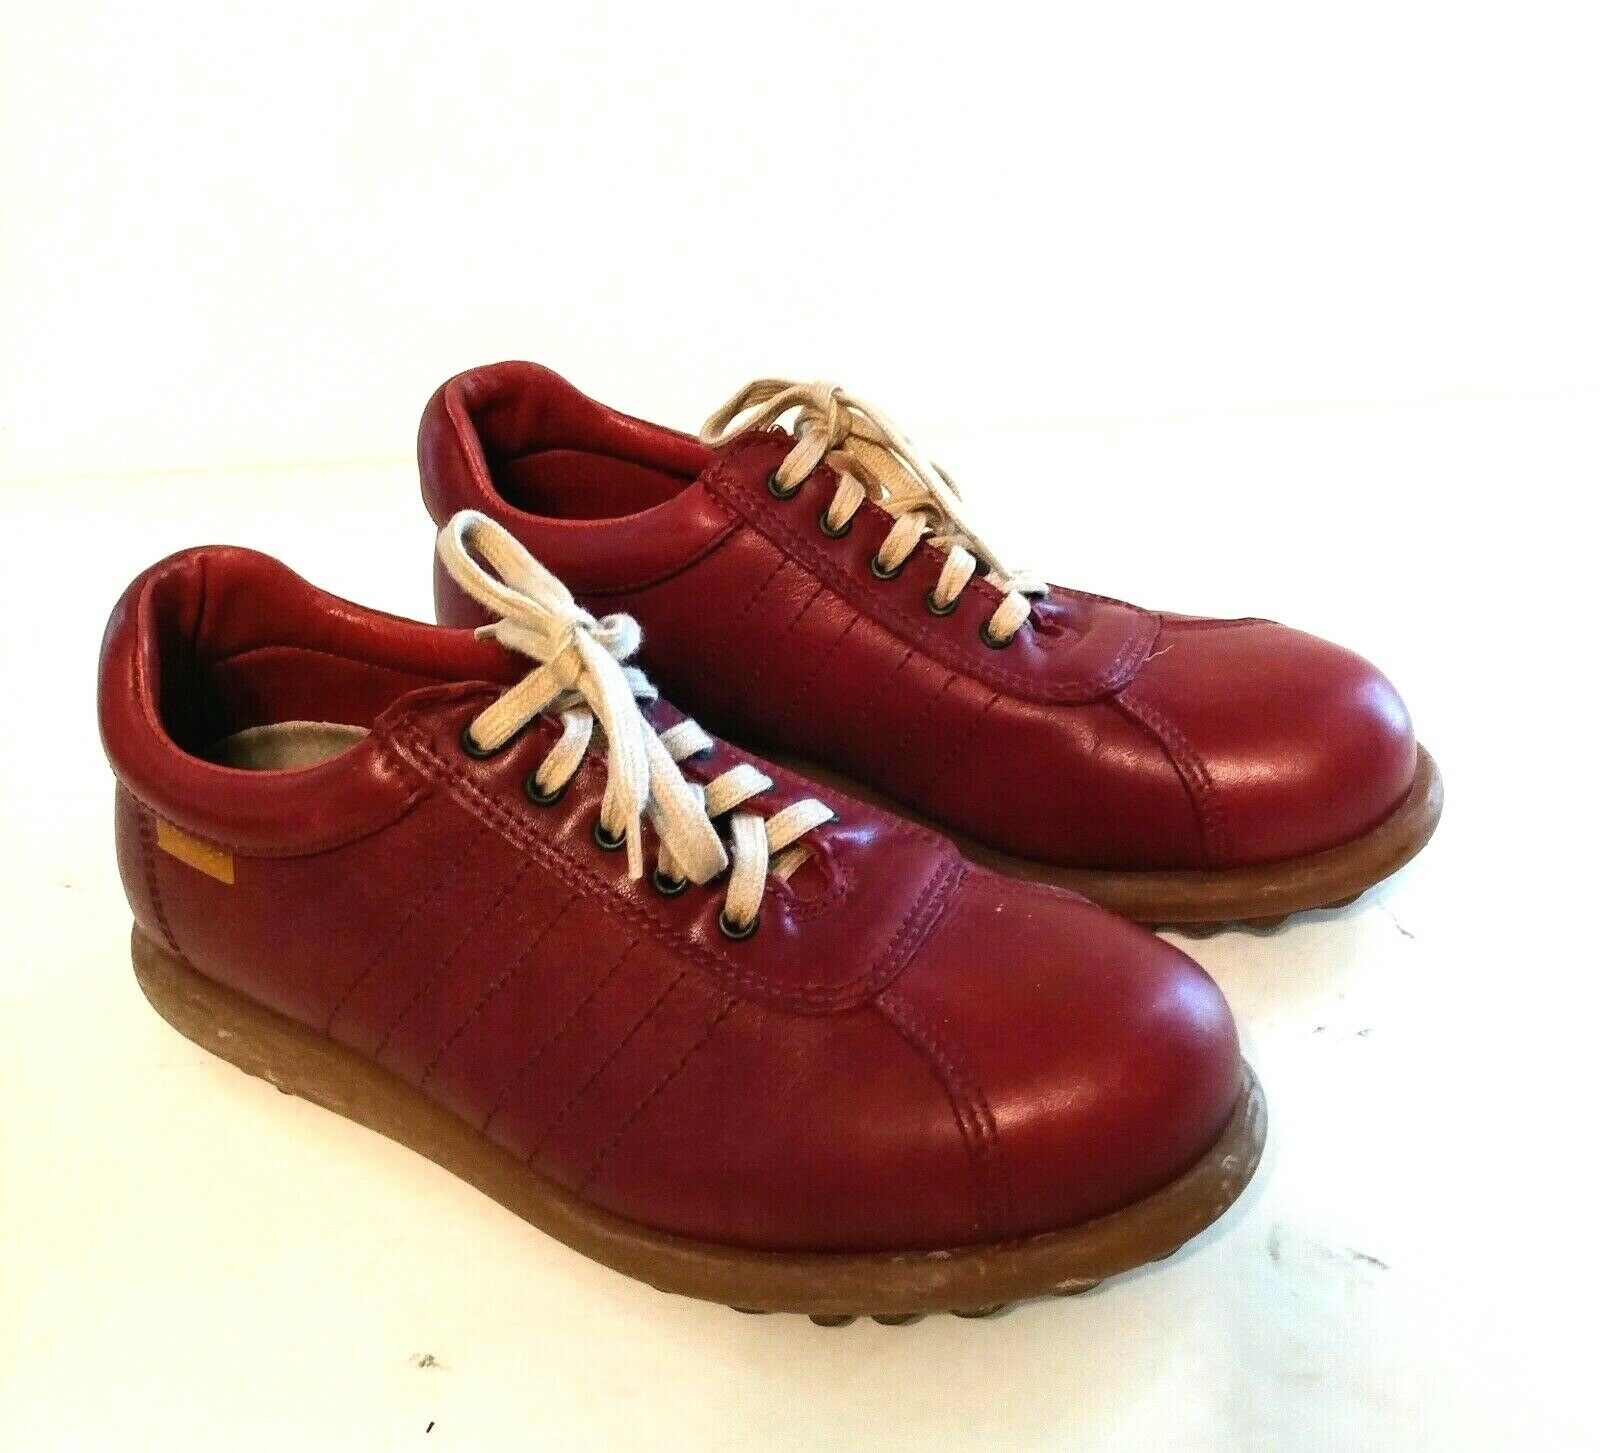 Camper Womens Shoes Red Burgundy Leather Oxford Sneakers EU 38 US 7.5 8 Lace Up